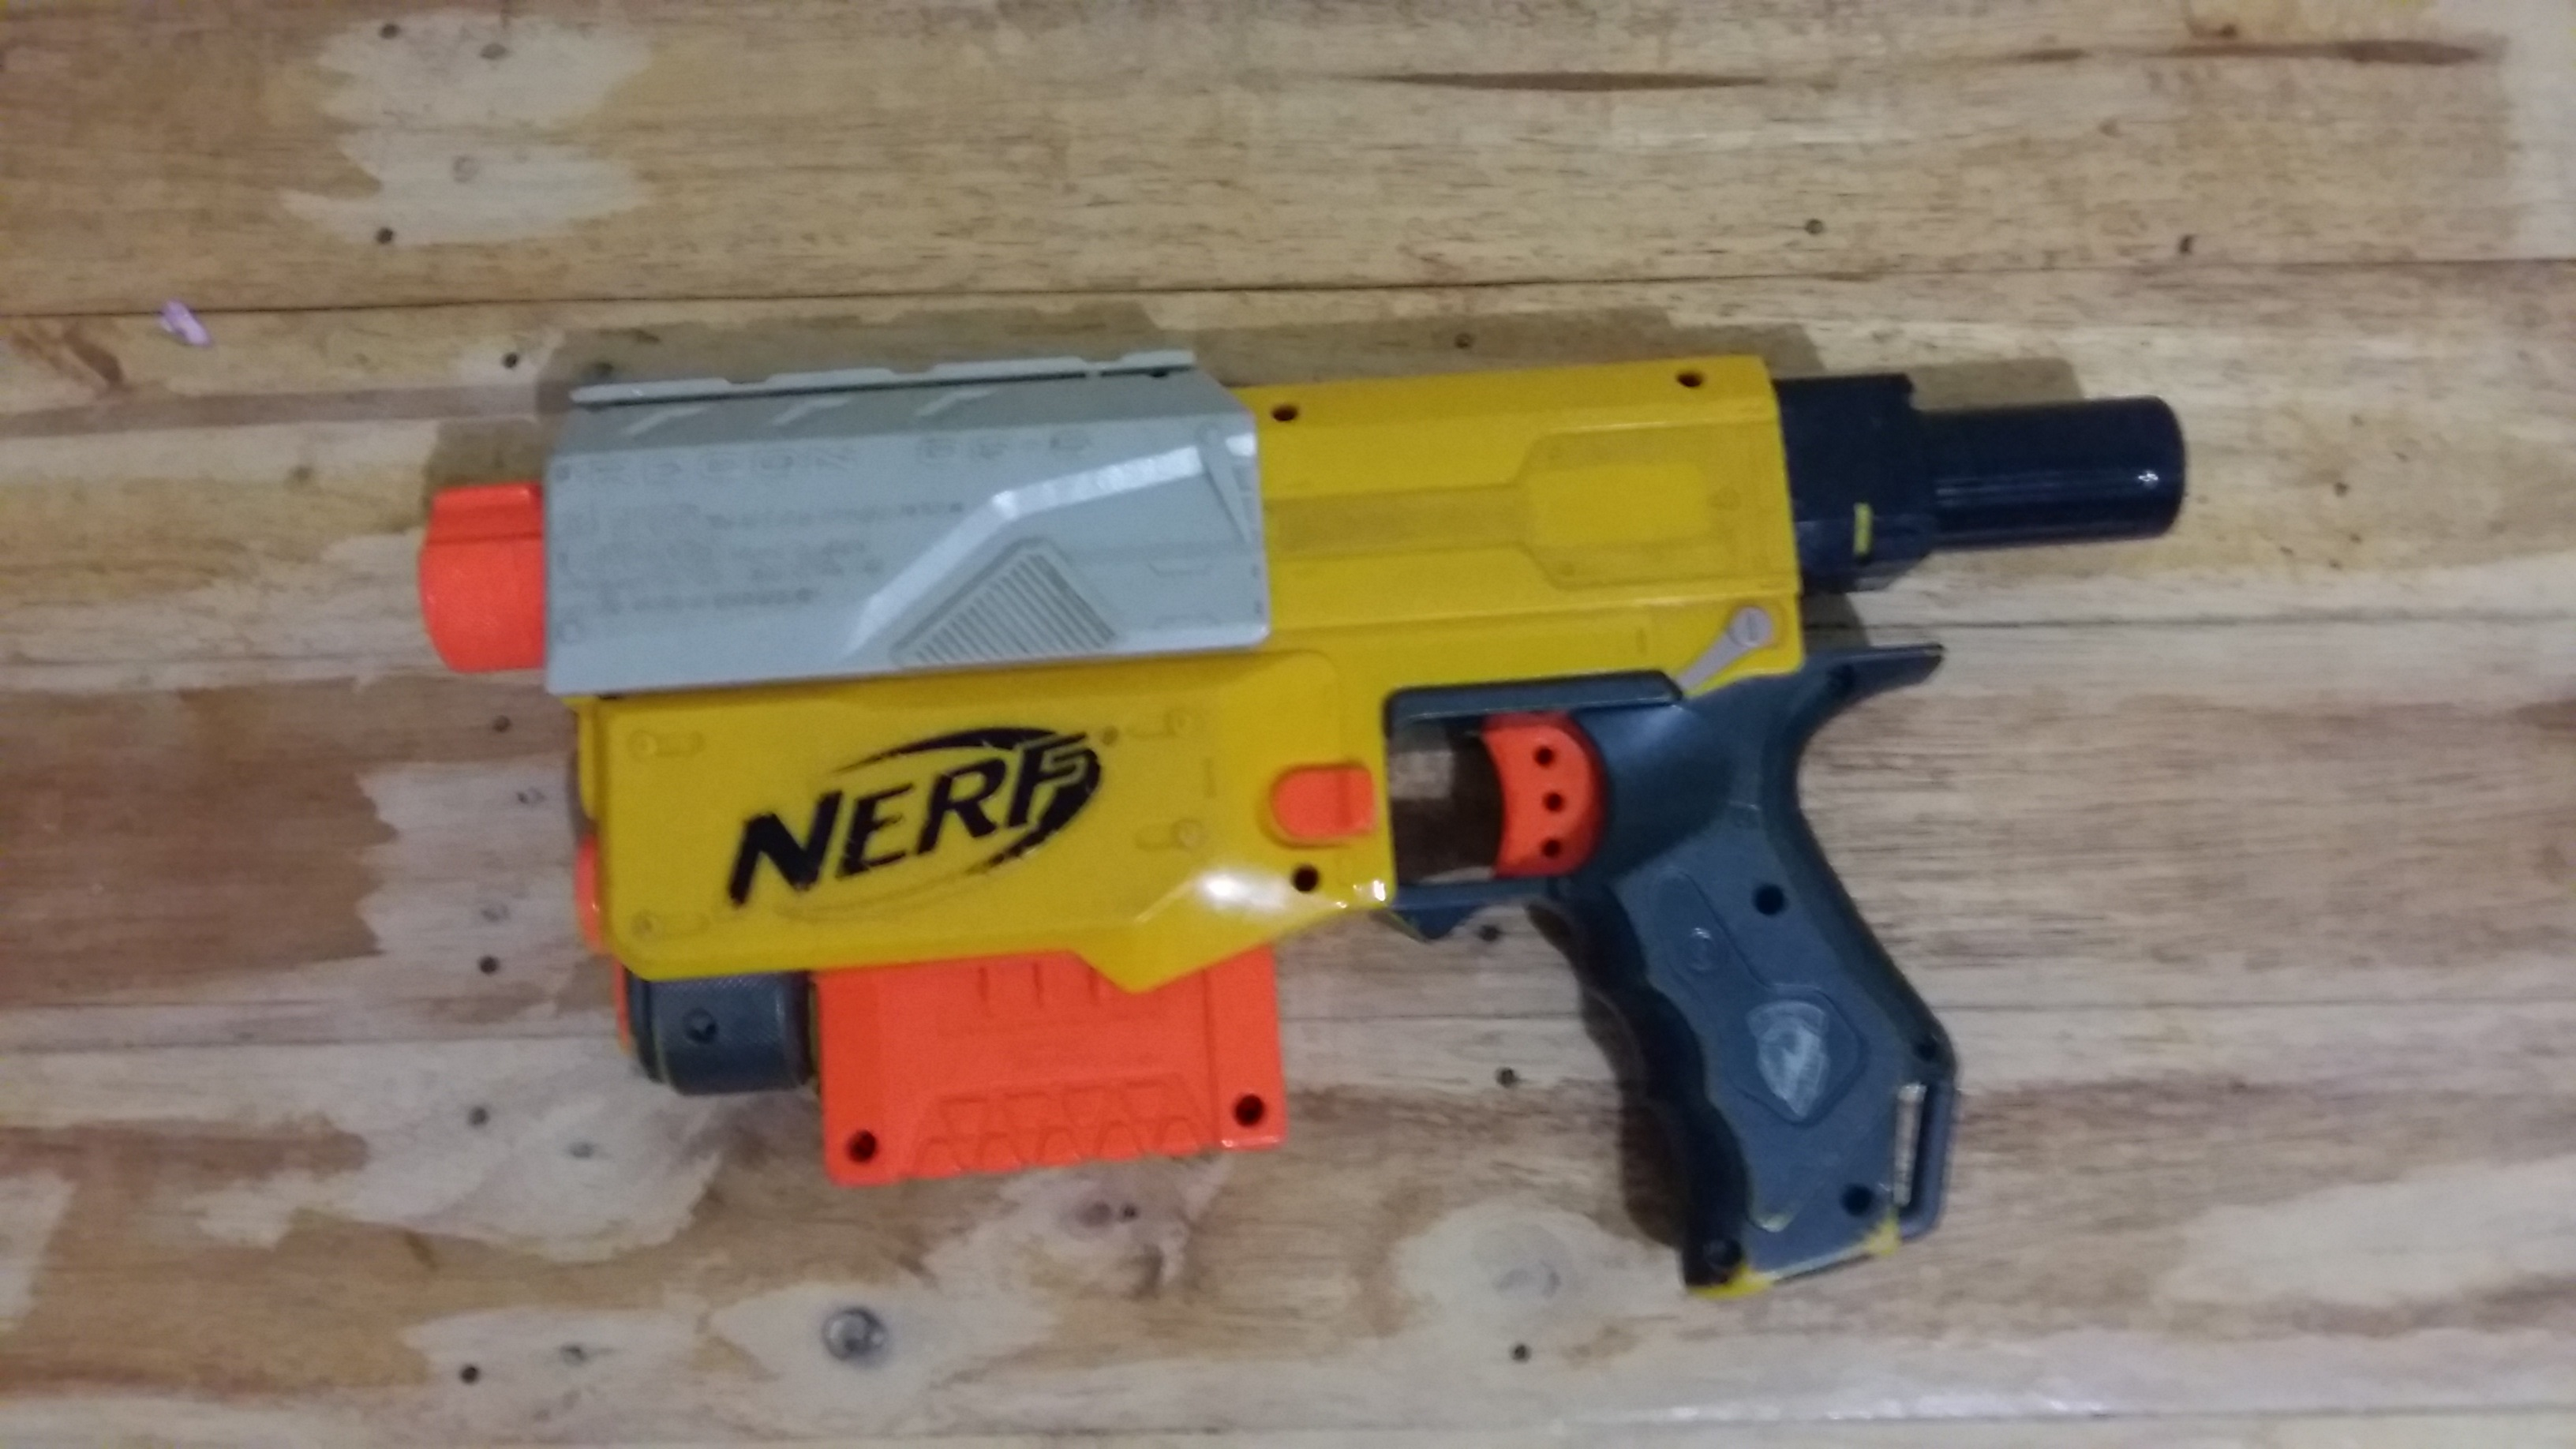 e of the oldest Nerf in my son s collection this is a modular gun I took out the stock and the long barrel and this one came out badass